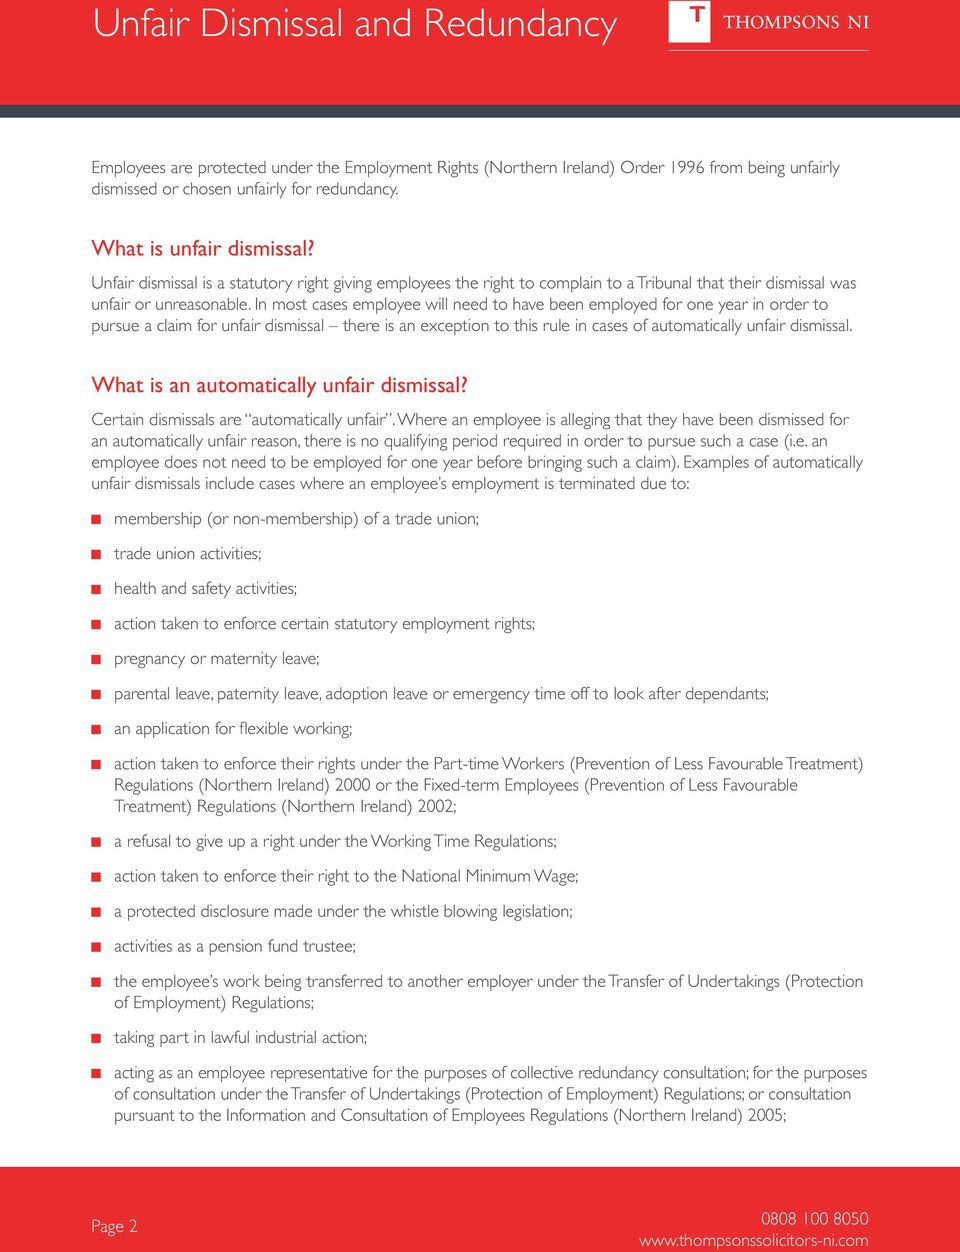 In most cases employee will need to have been employed for one year in order to pursue a claim for unfair dismissal there is an exception to this rule in cases of automatically unfair dismissal.